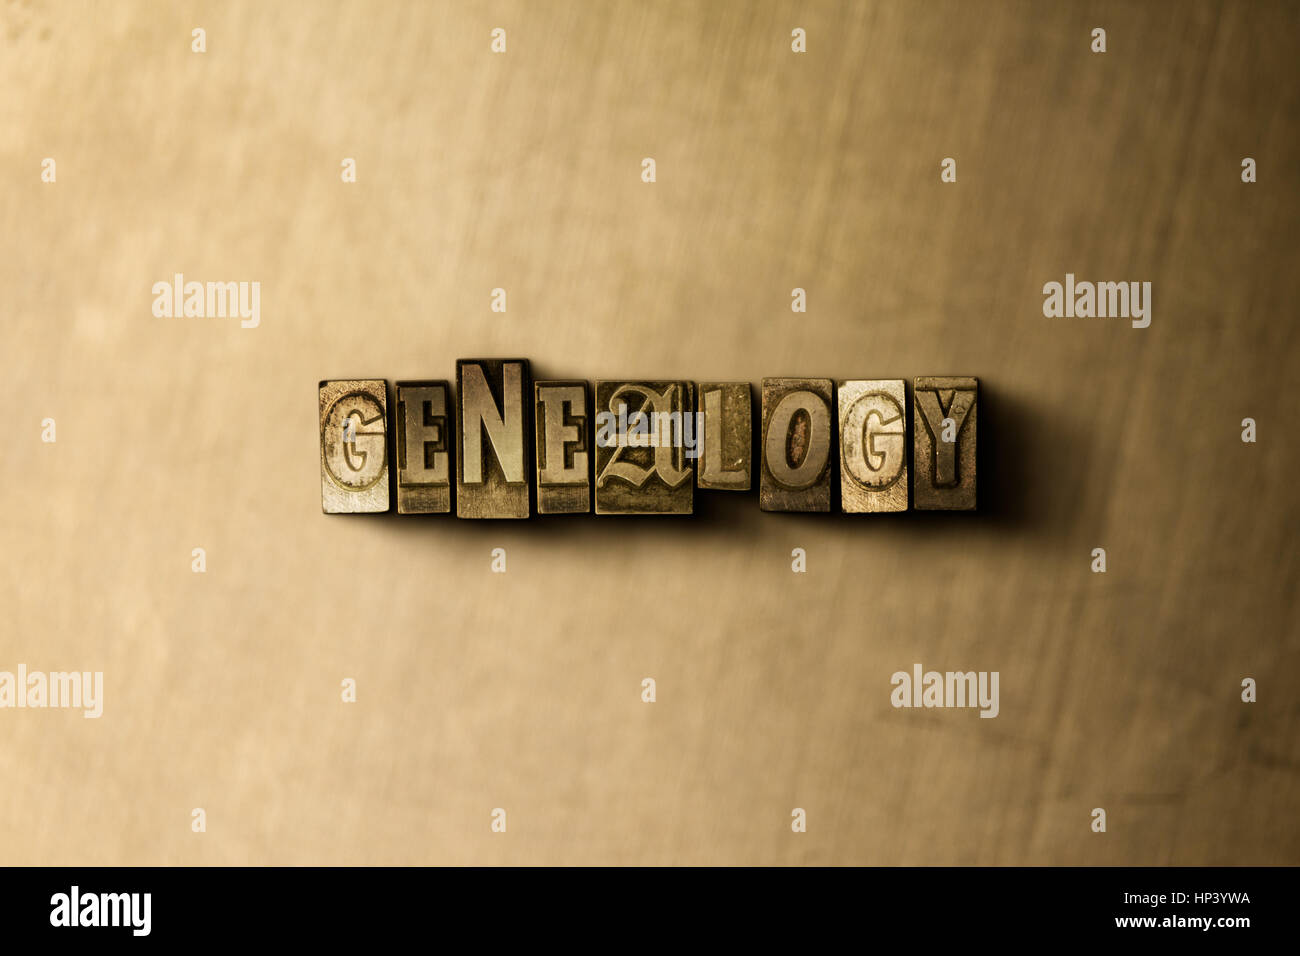 GENEALOGY - close-up of grungy vintage typeset word on metal backdrop. Royalty free stock illustration.  Can be - Stock Image